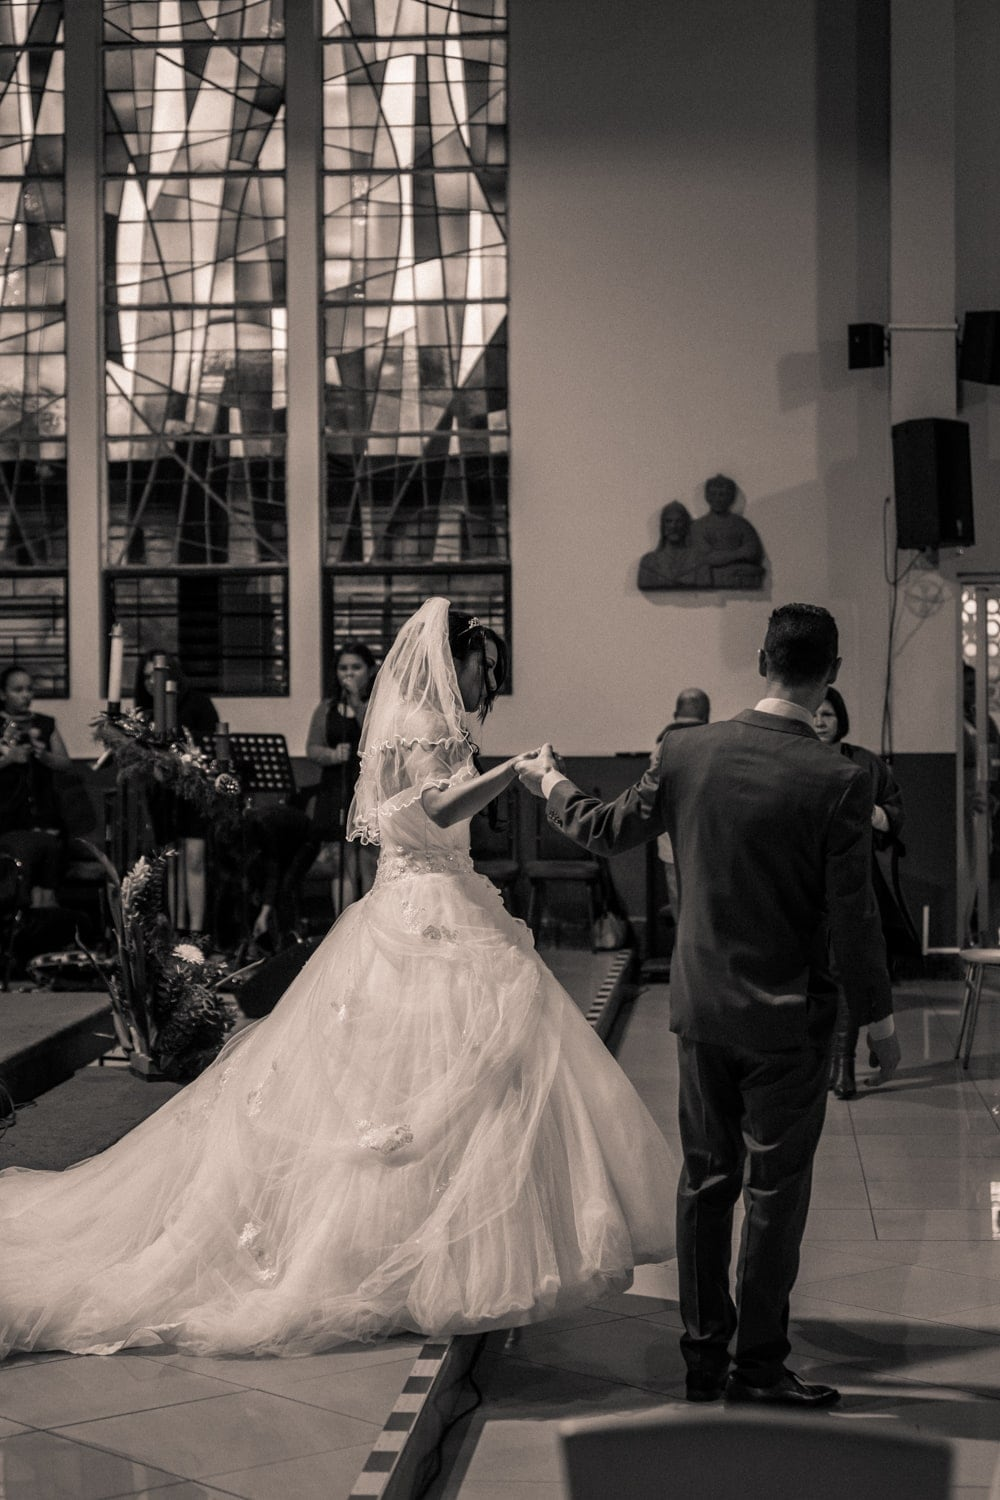 Groom escorts bride out of church after getting married.